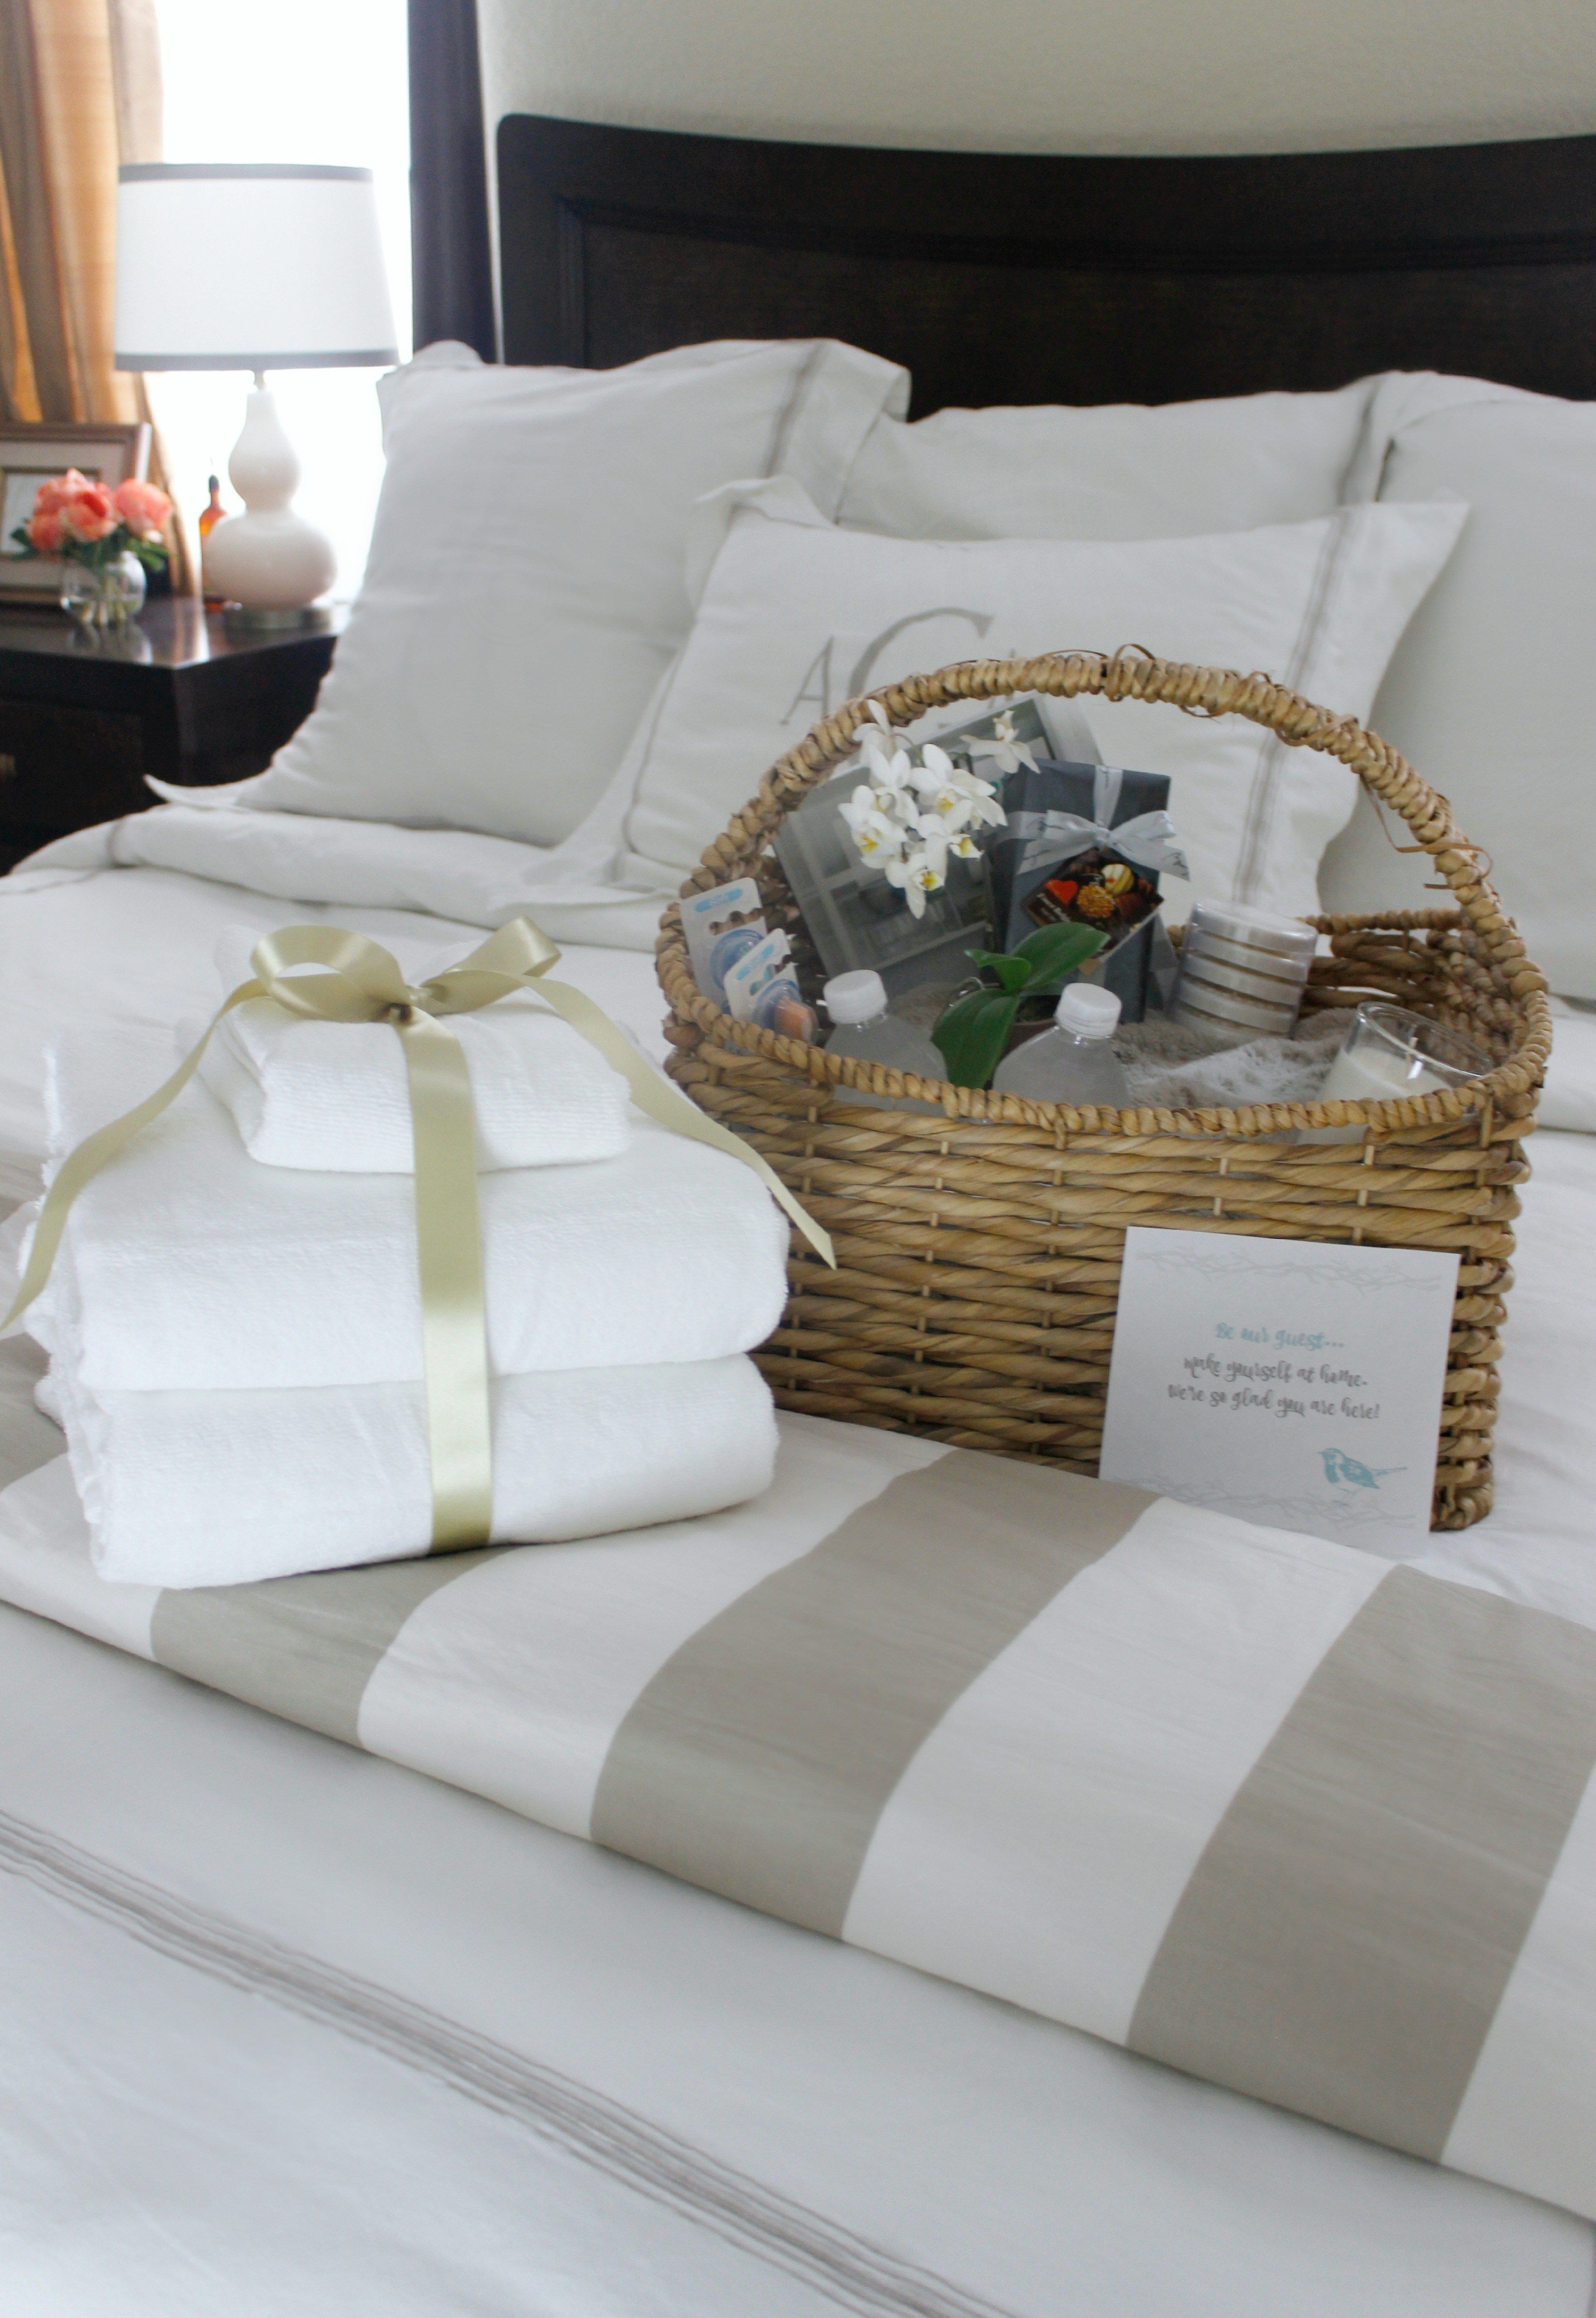 Overnight Guest Welcome Basket …